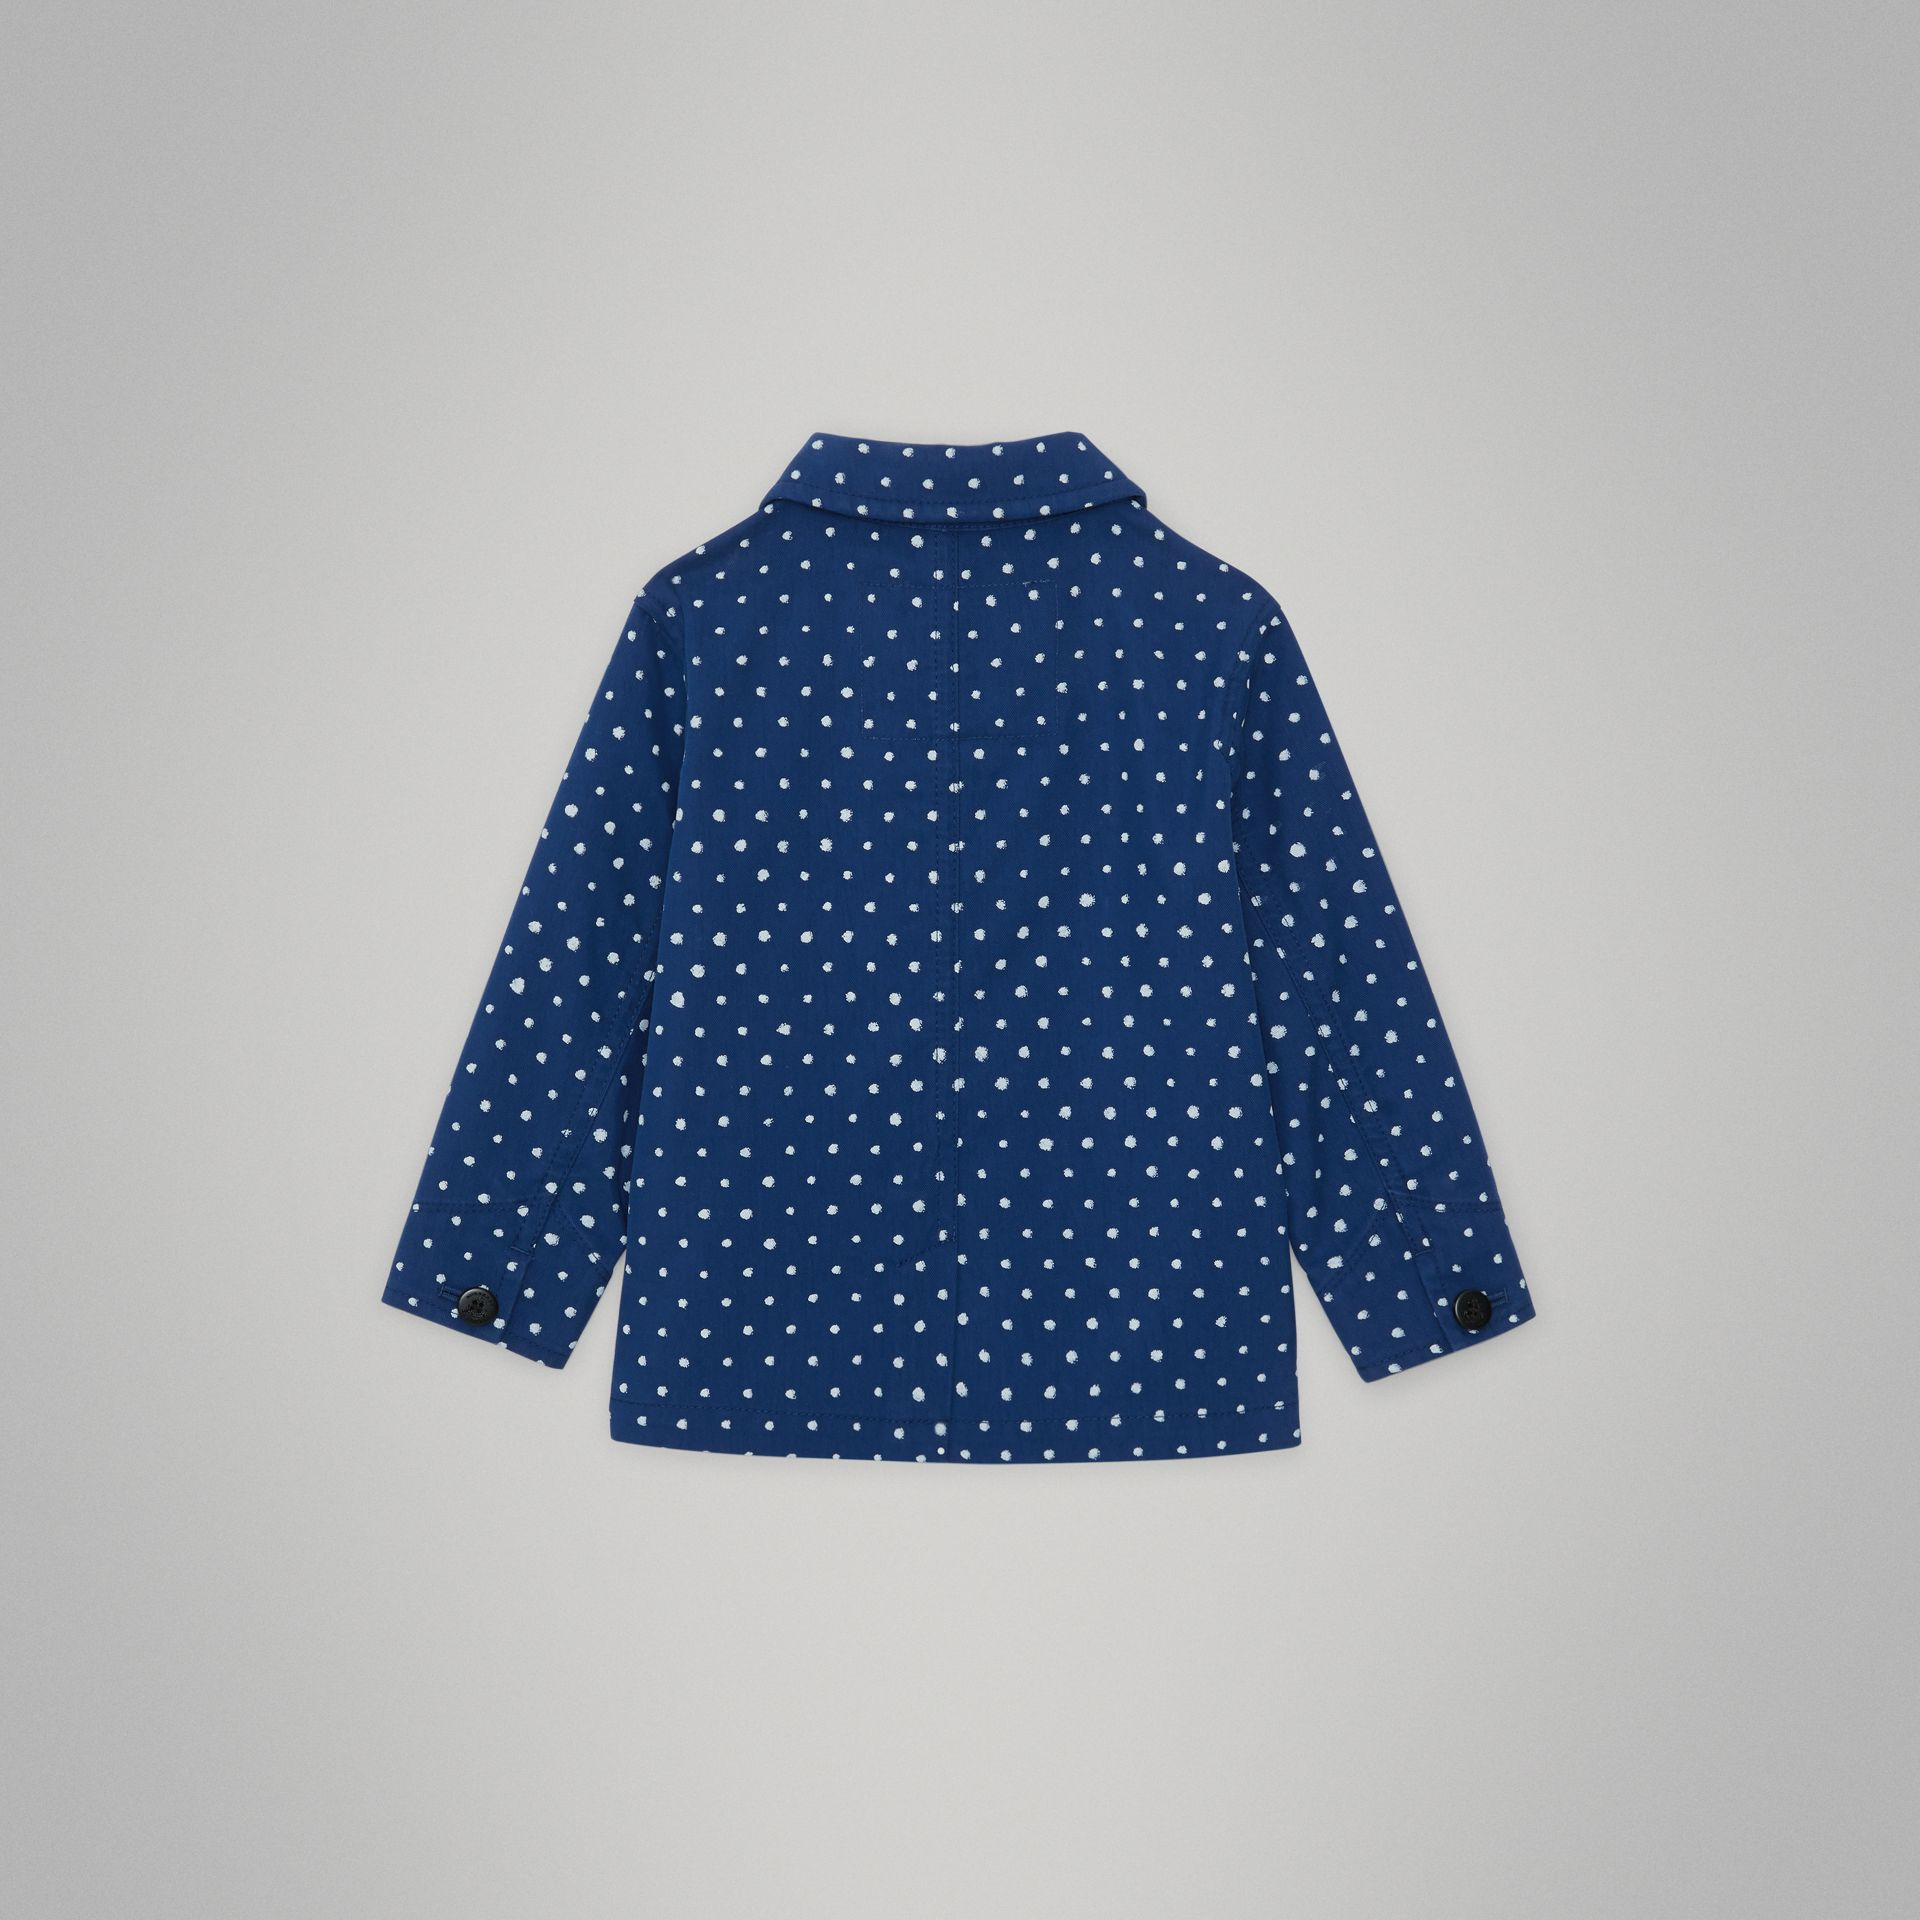 Spot Print Cotton Blend Jacket in Bright Navy - Children | Burberry Canada - gallery image 3